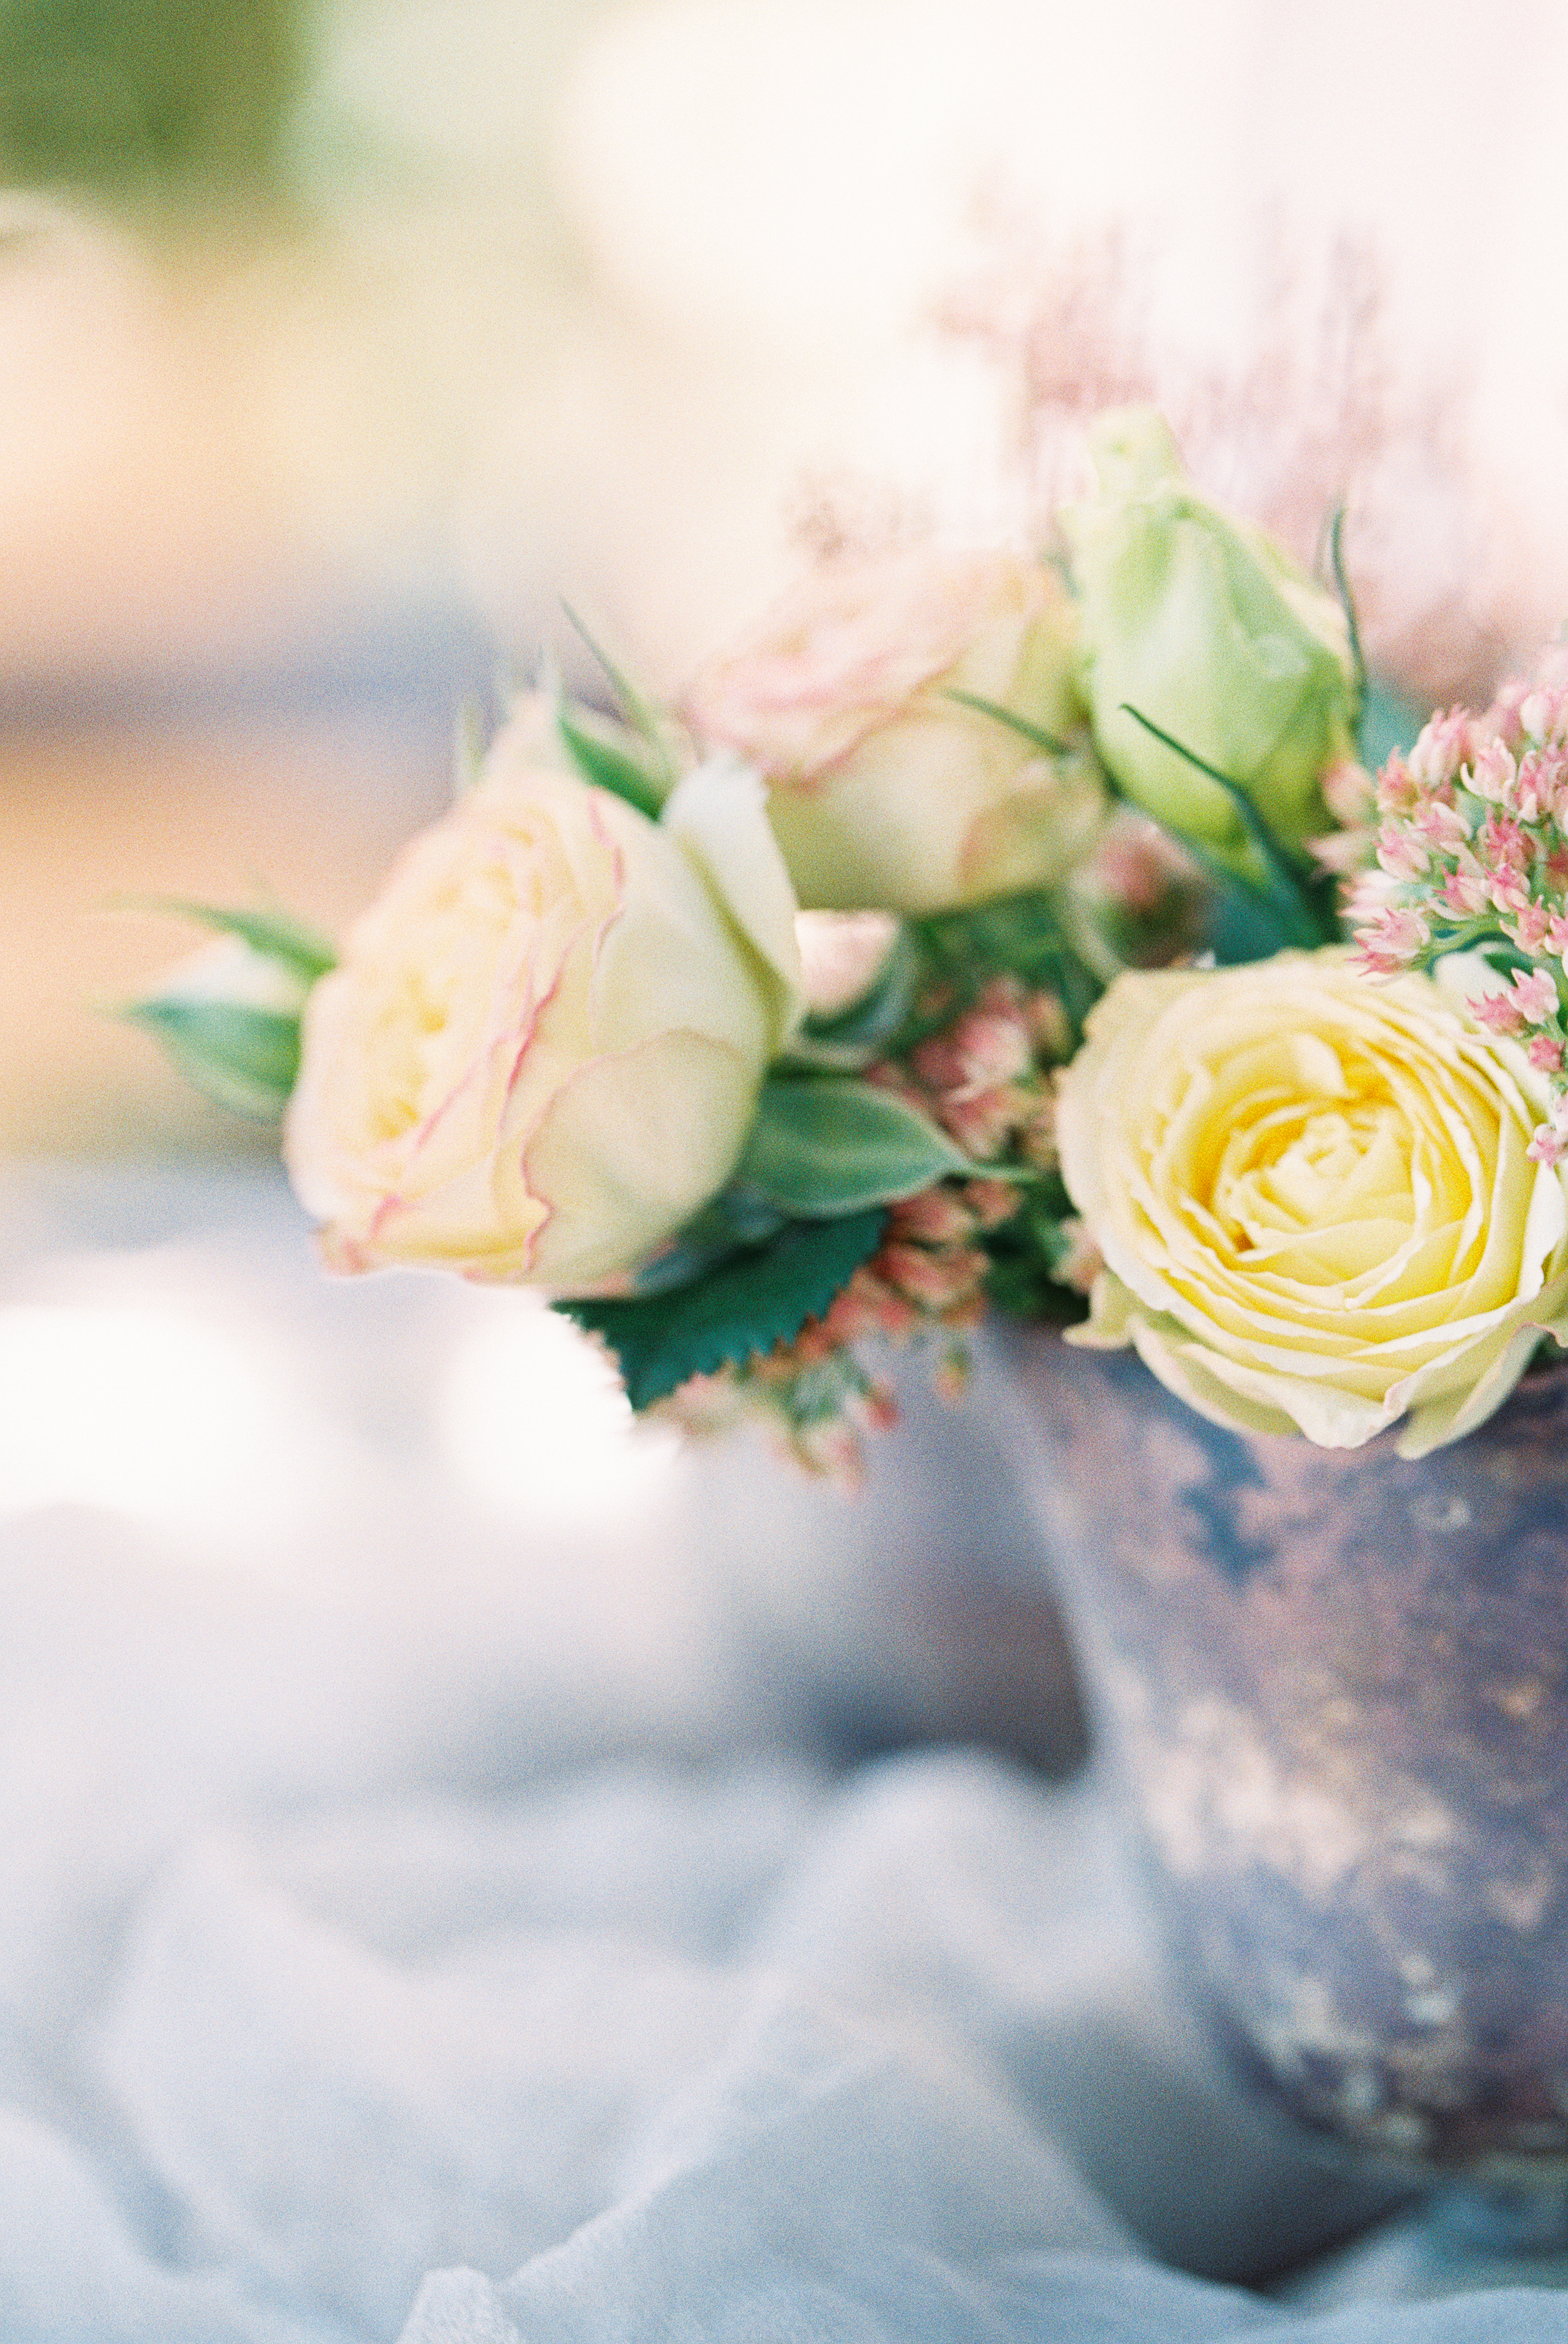 Michelle Leo Events | Full Service Event Design and Planning in Utah